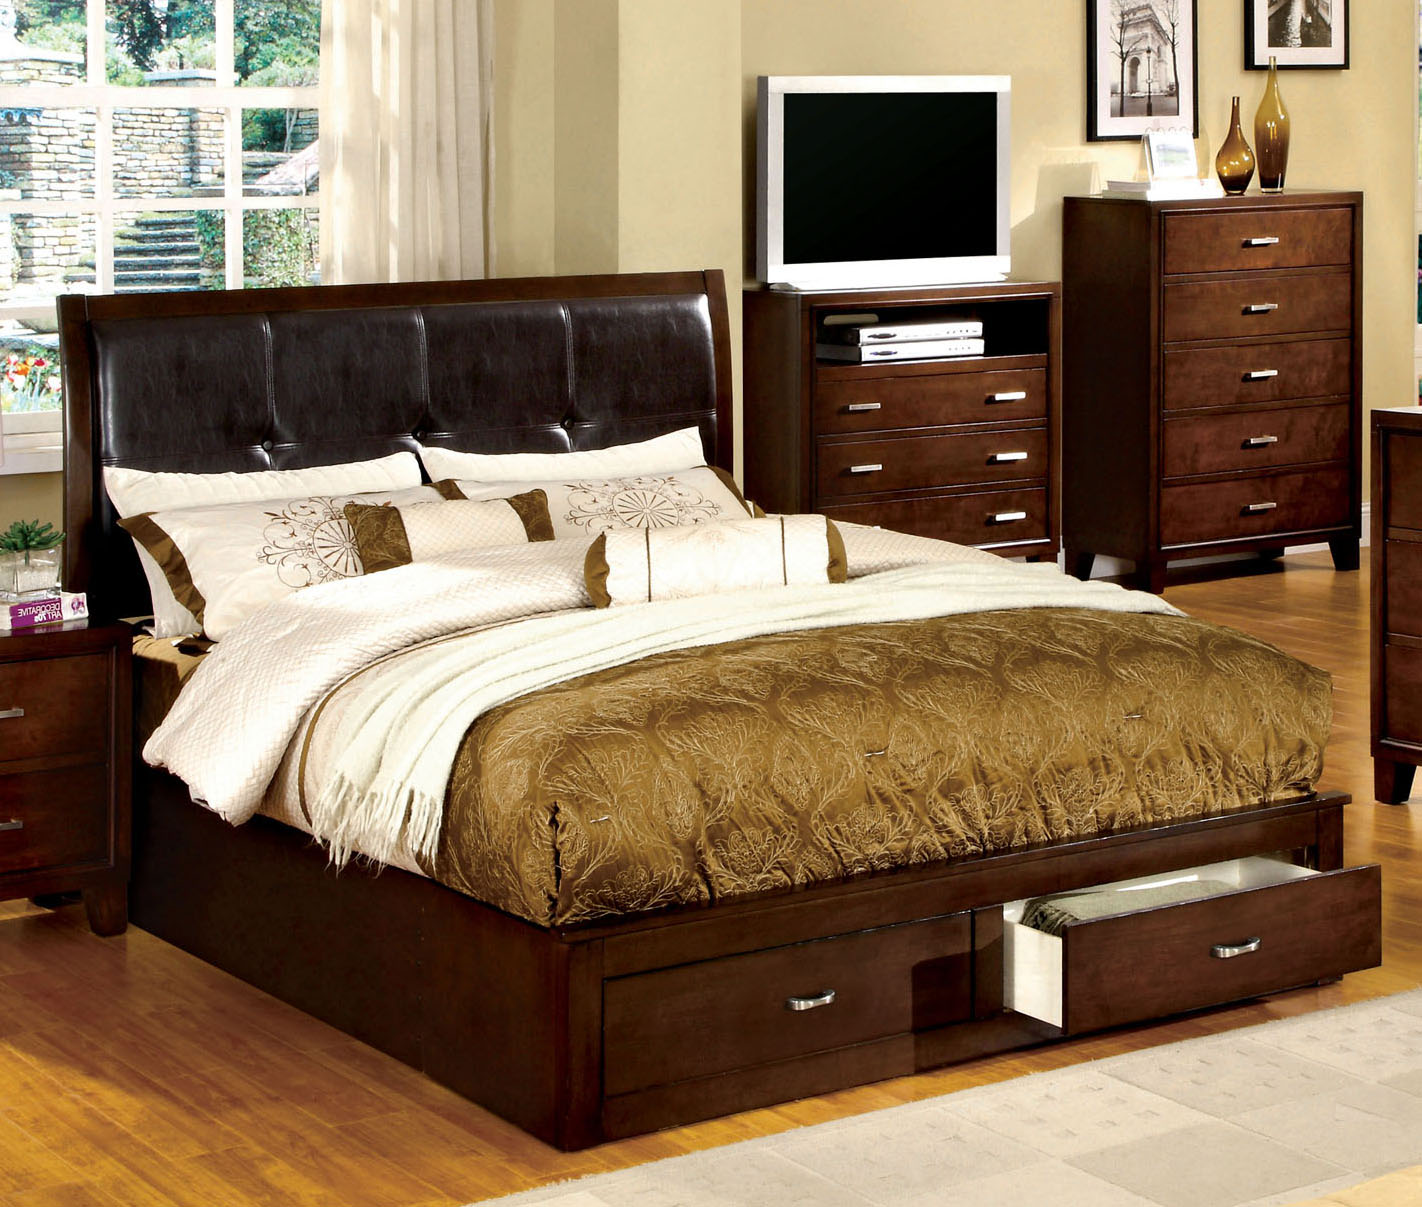 Enrico III CM7066CK Brown Cherry California King Storage Platform Bed